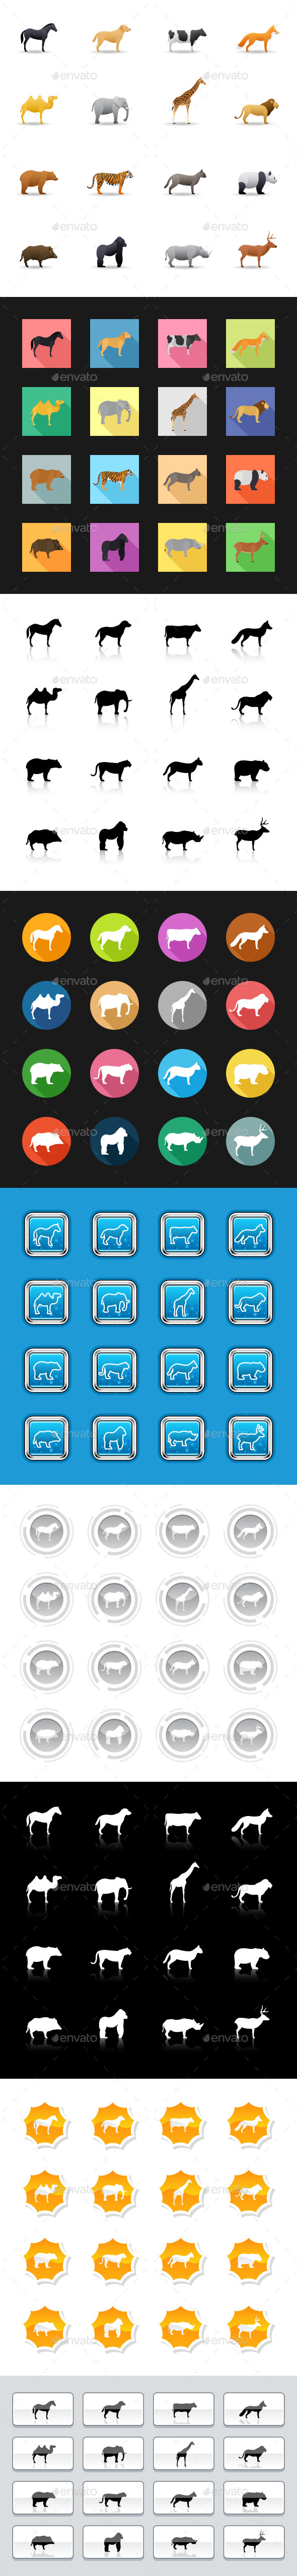 144 Icons on 9 Styles - Animals & Zoo - Animals Characters